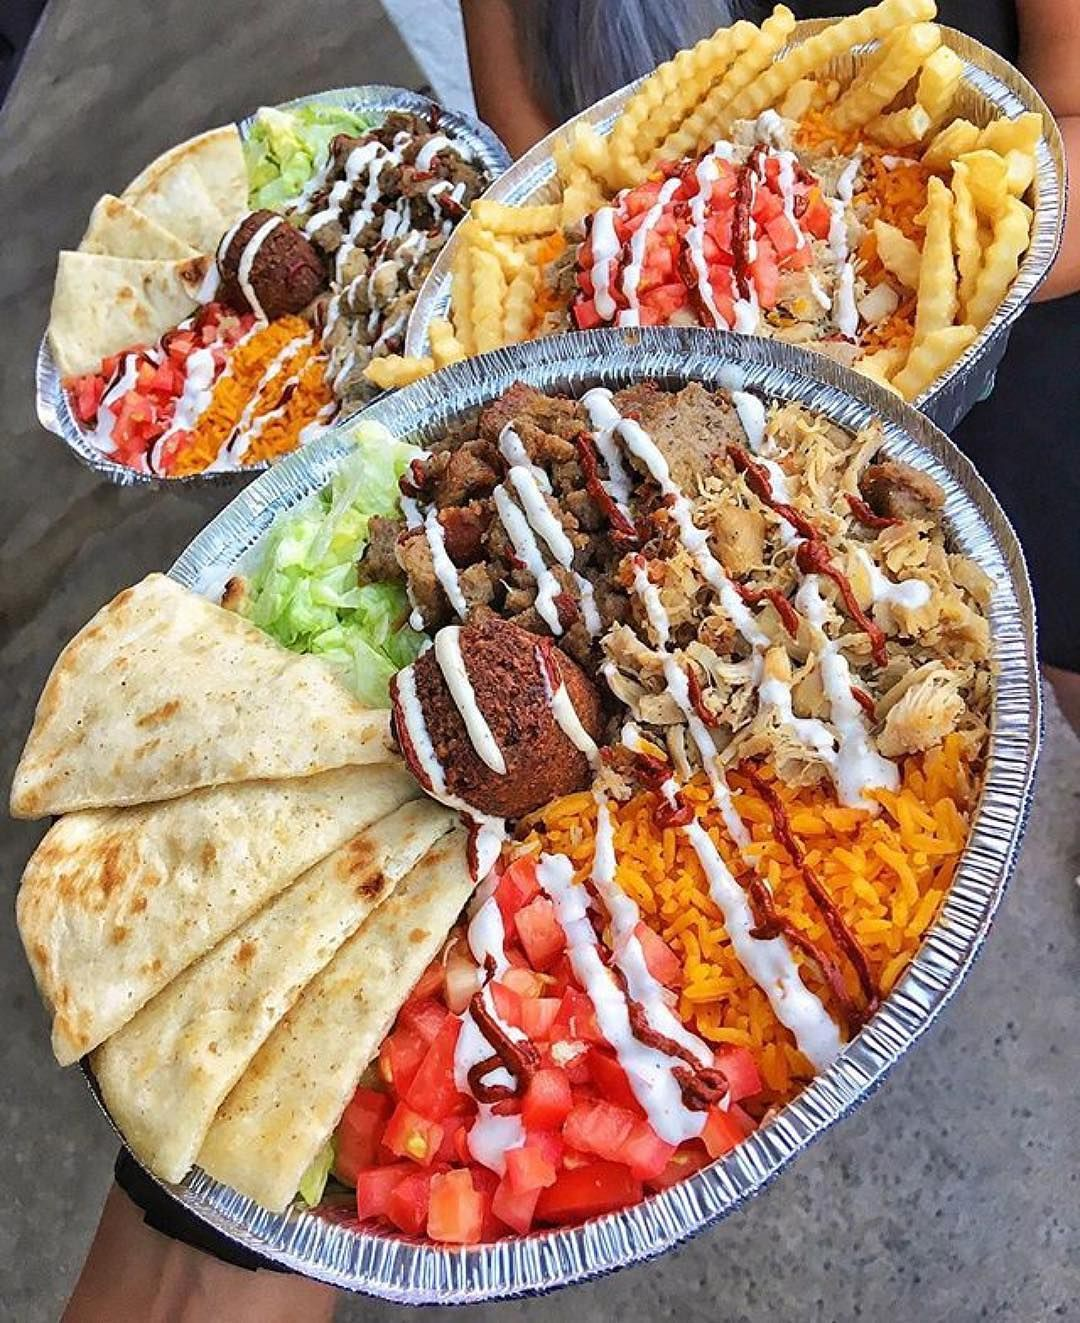 When It Comes To Cheap Eats Nyc Is King New York Food Cheap Eats Nyc Nyc Food